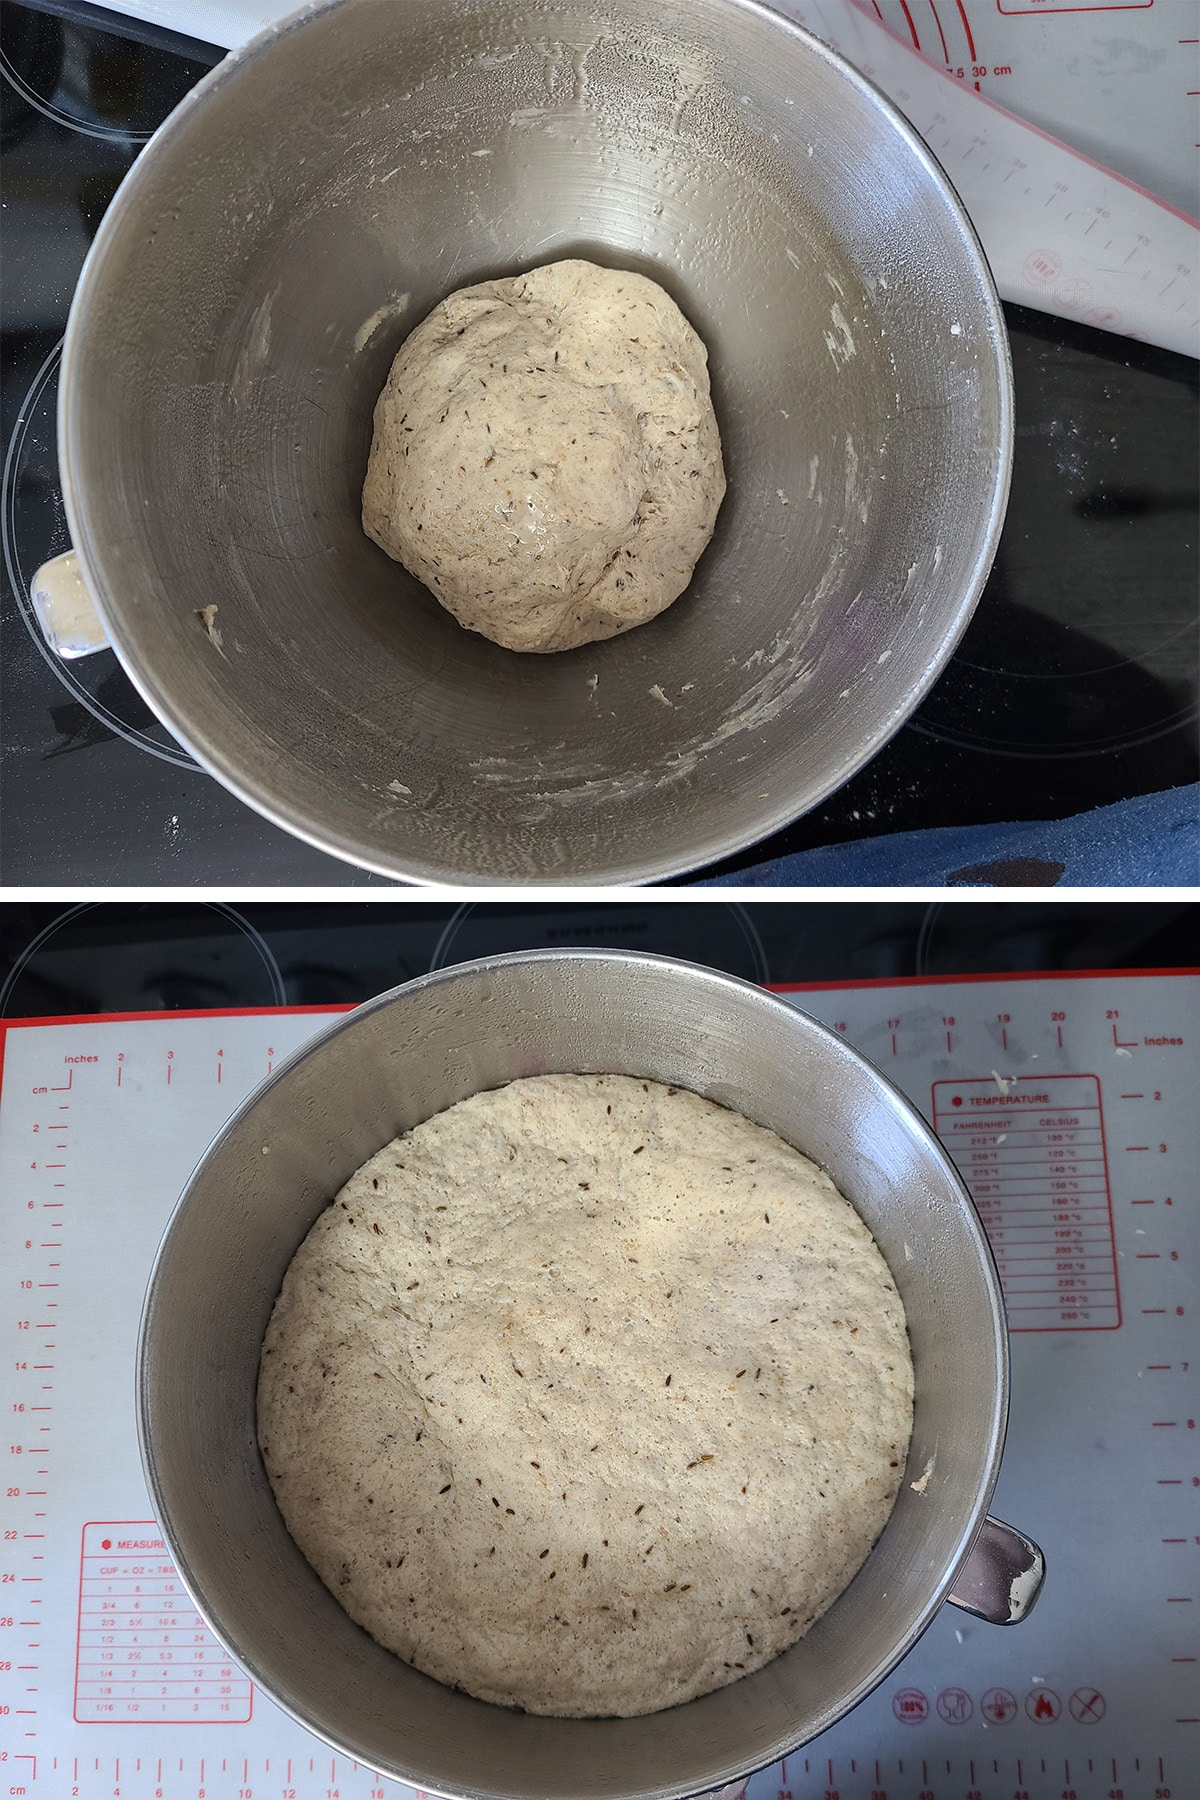 The ball of dough before and after rising.